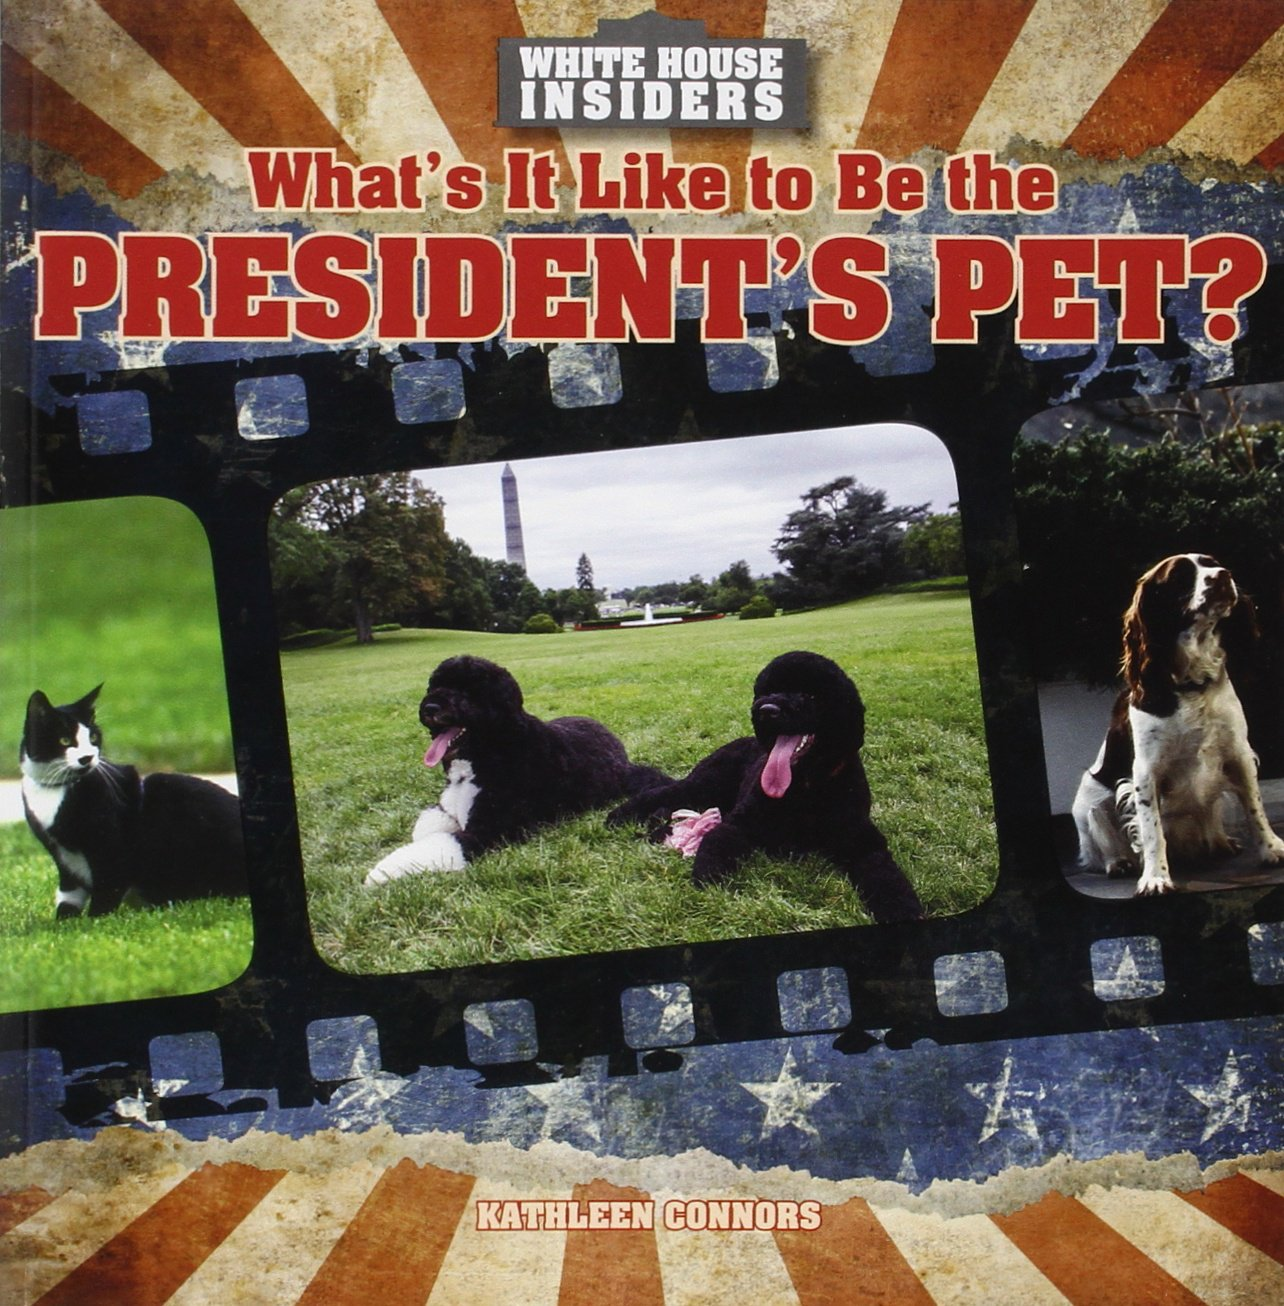 What's It Like to Be the President's Pet? (White House Insiders)